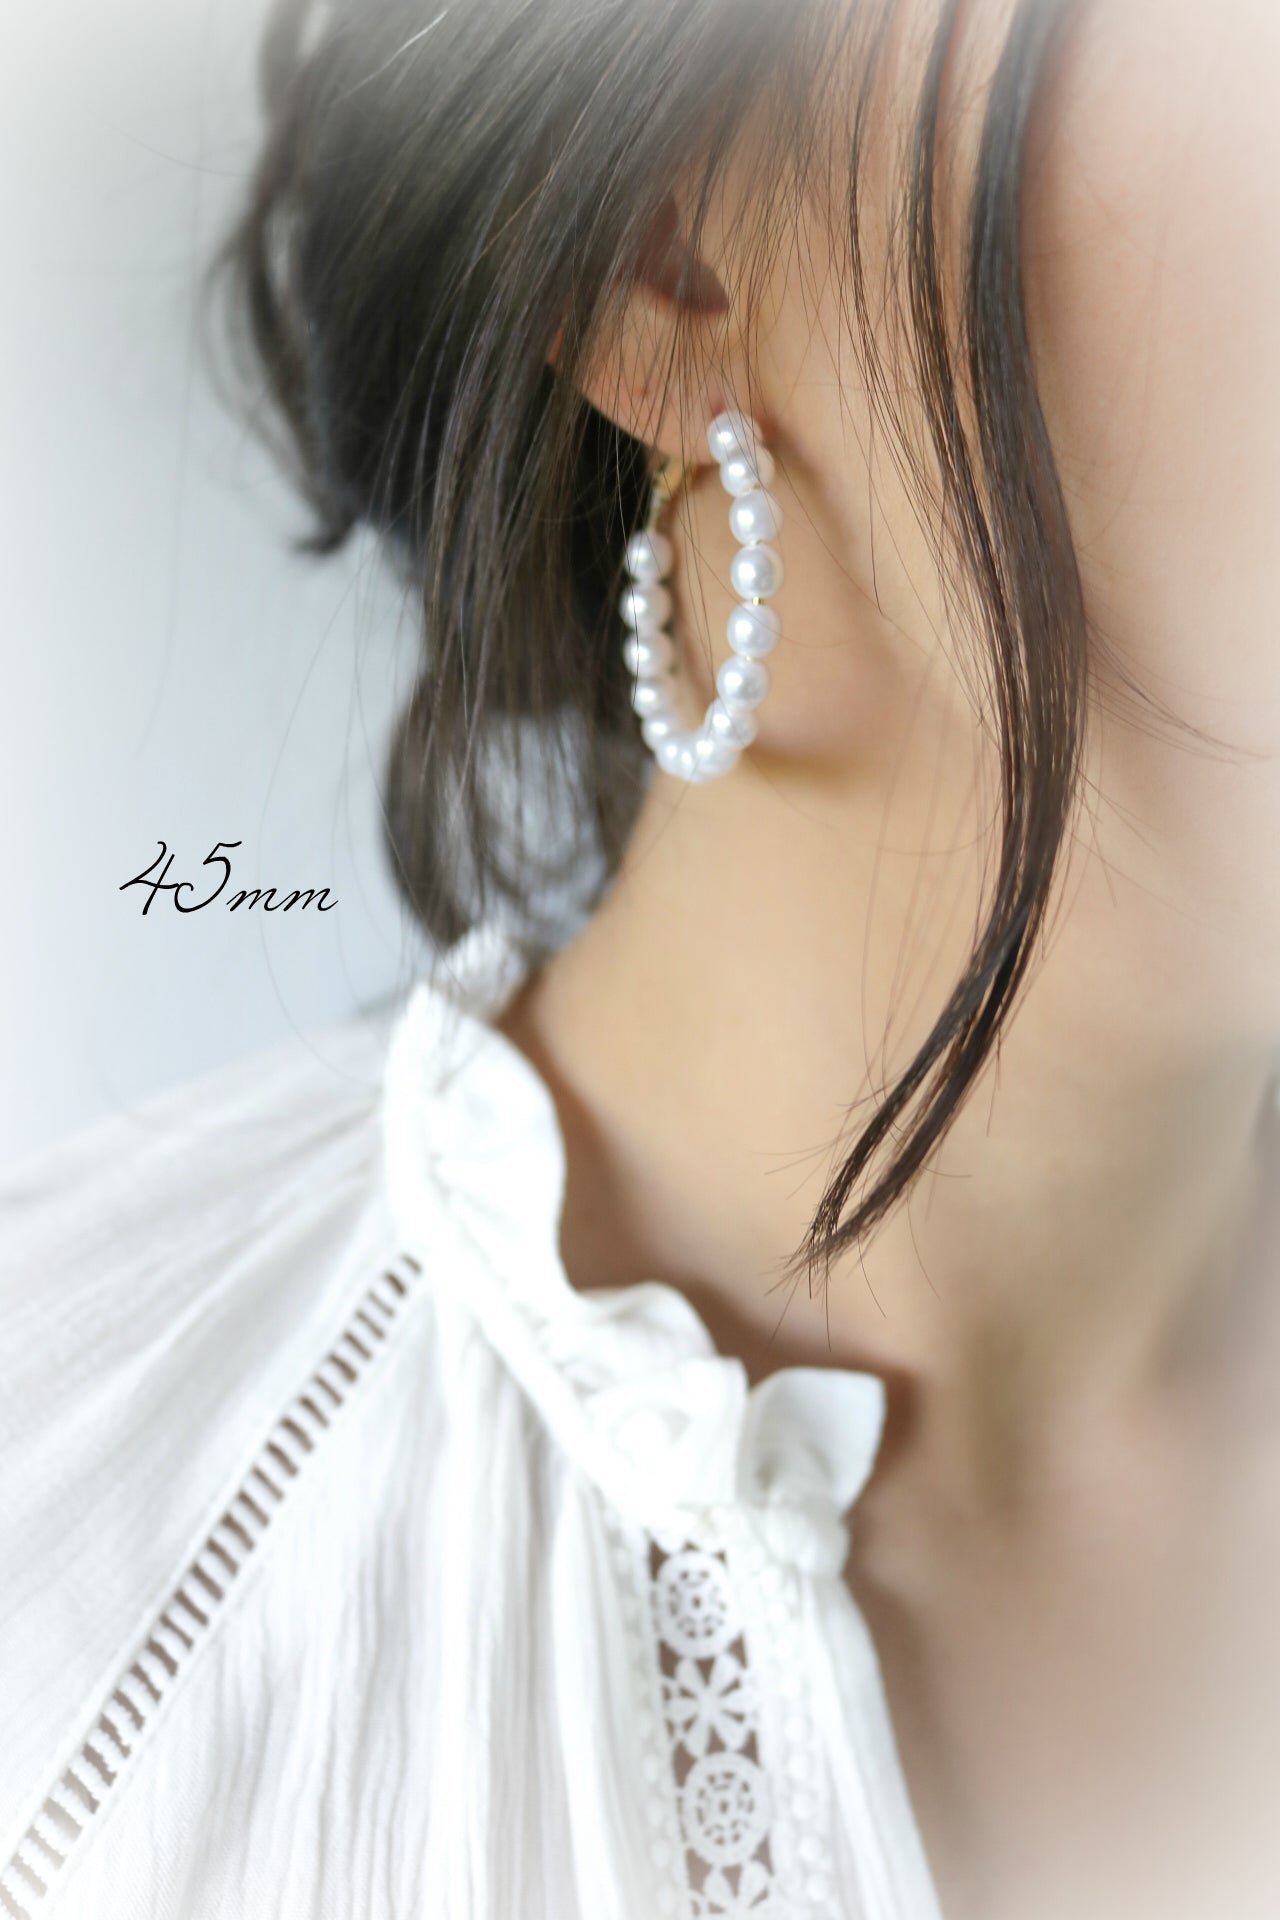 Pearl Hoop Earrings - 45mm